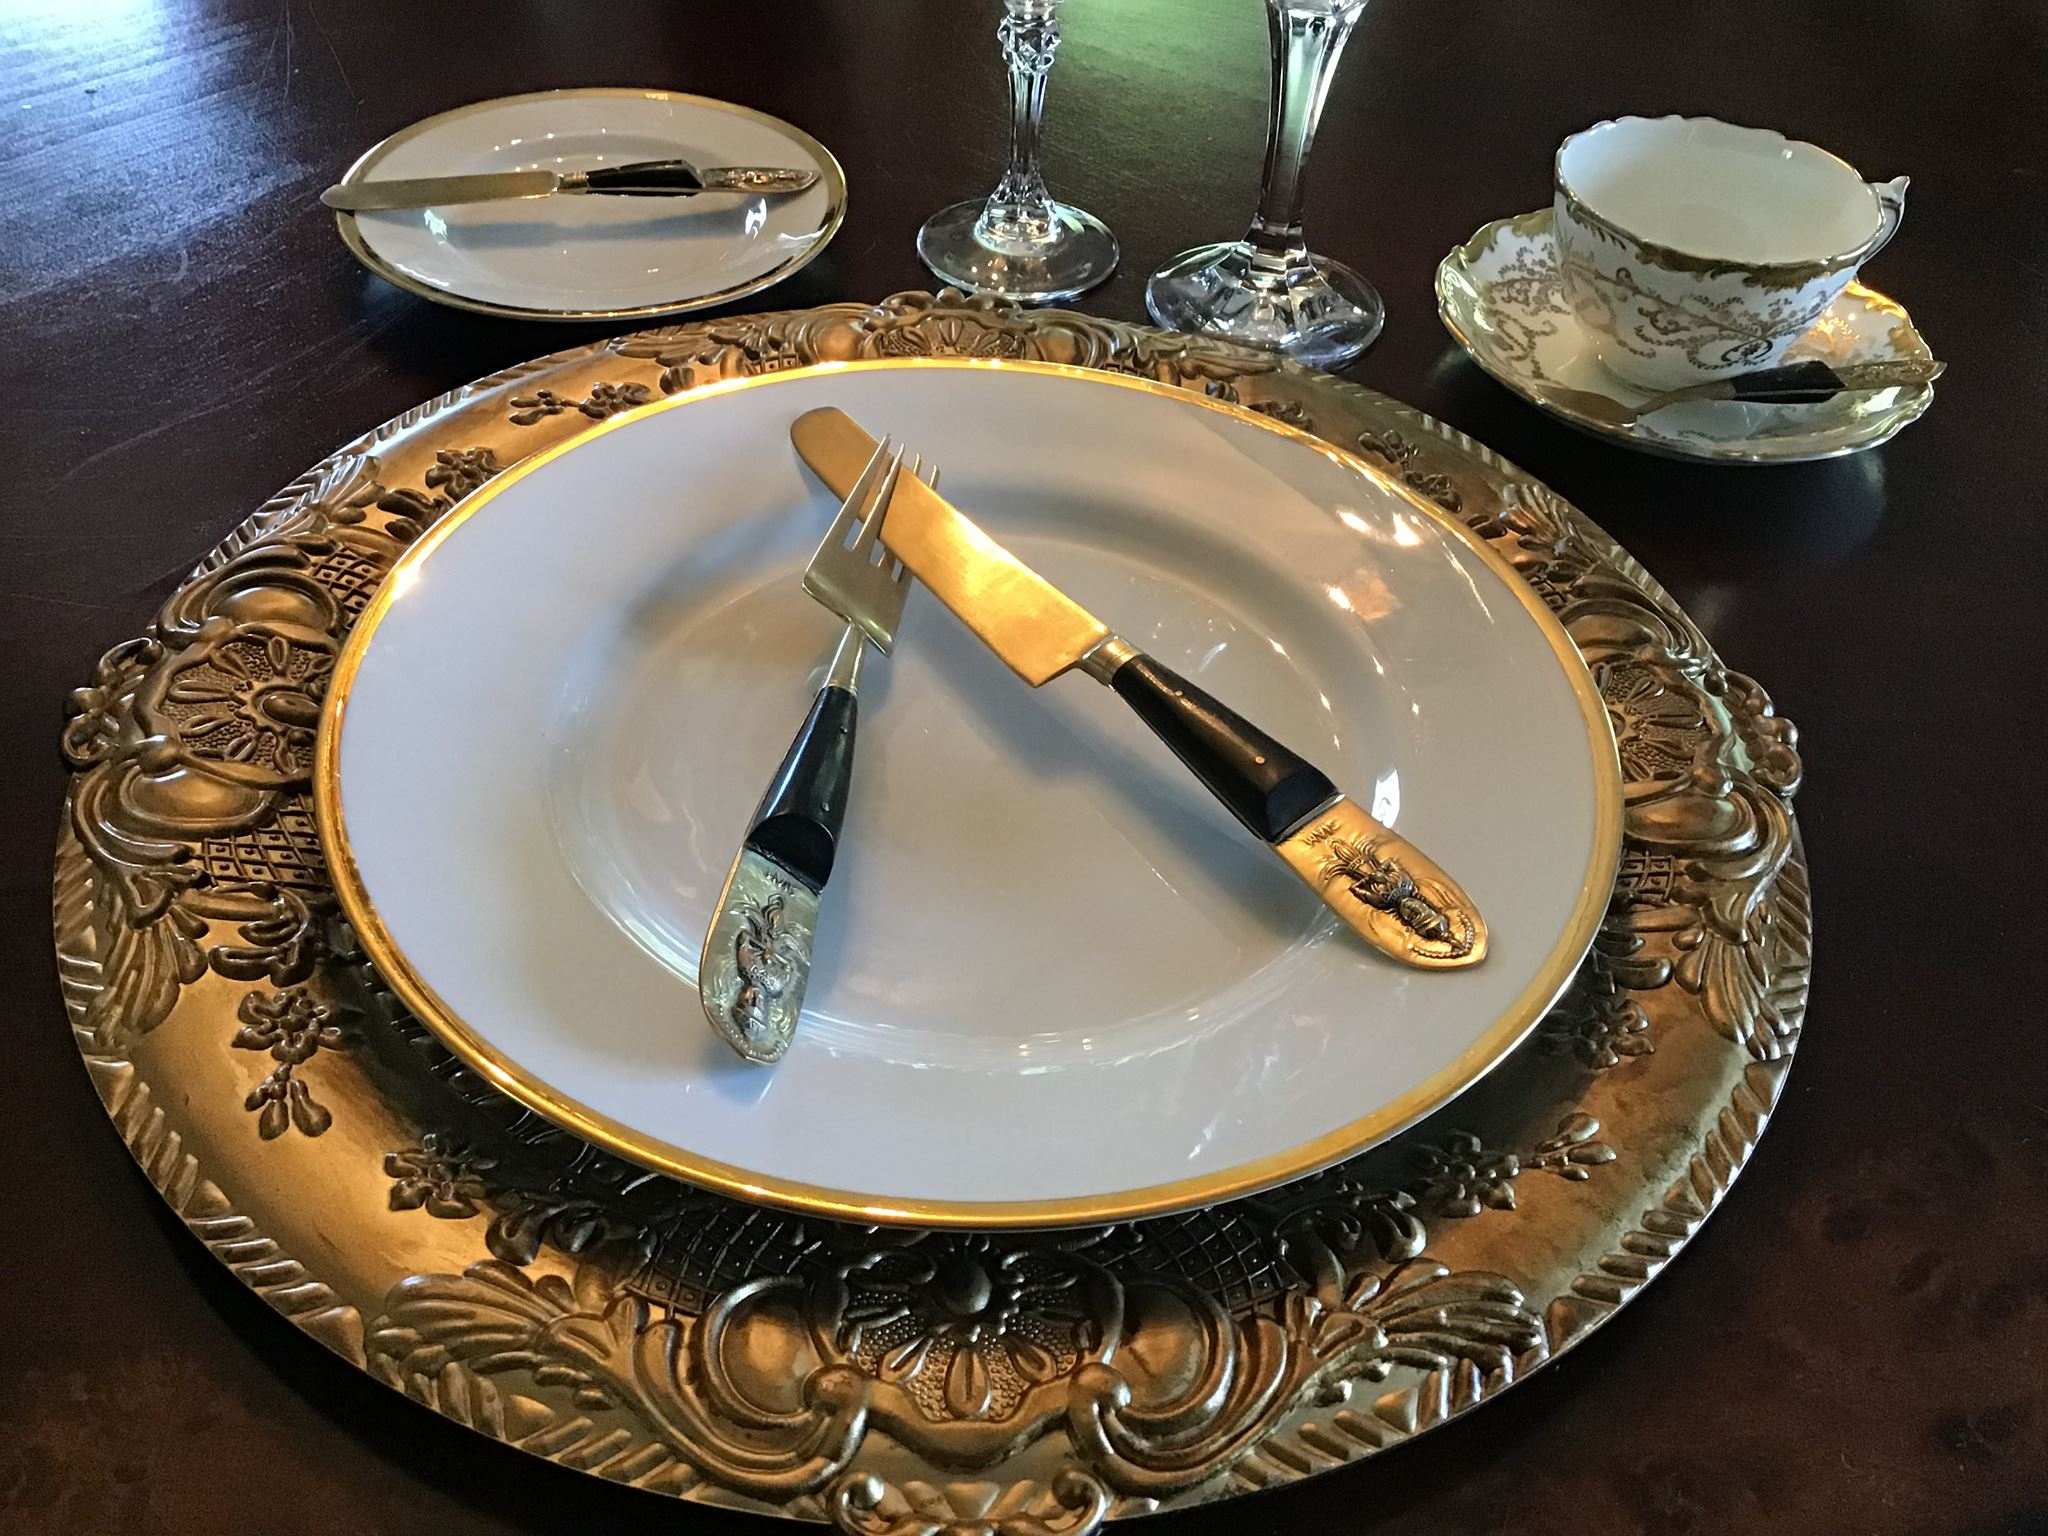 """Mariby Corpening's DID YOU KNOW: Table Etiquette No. 5 - By placement of utensils - """"I DID NOT LIKE IT!"""""""